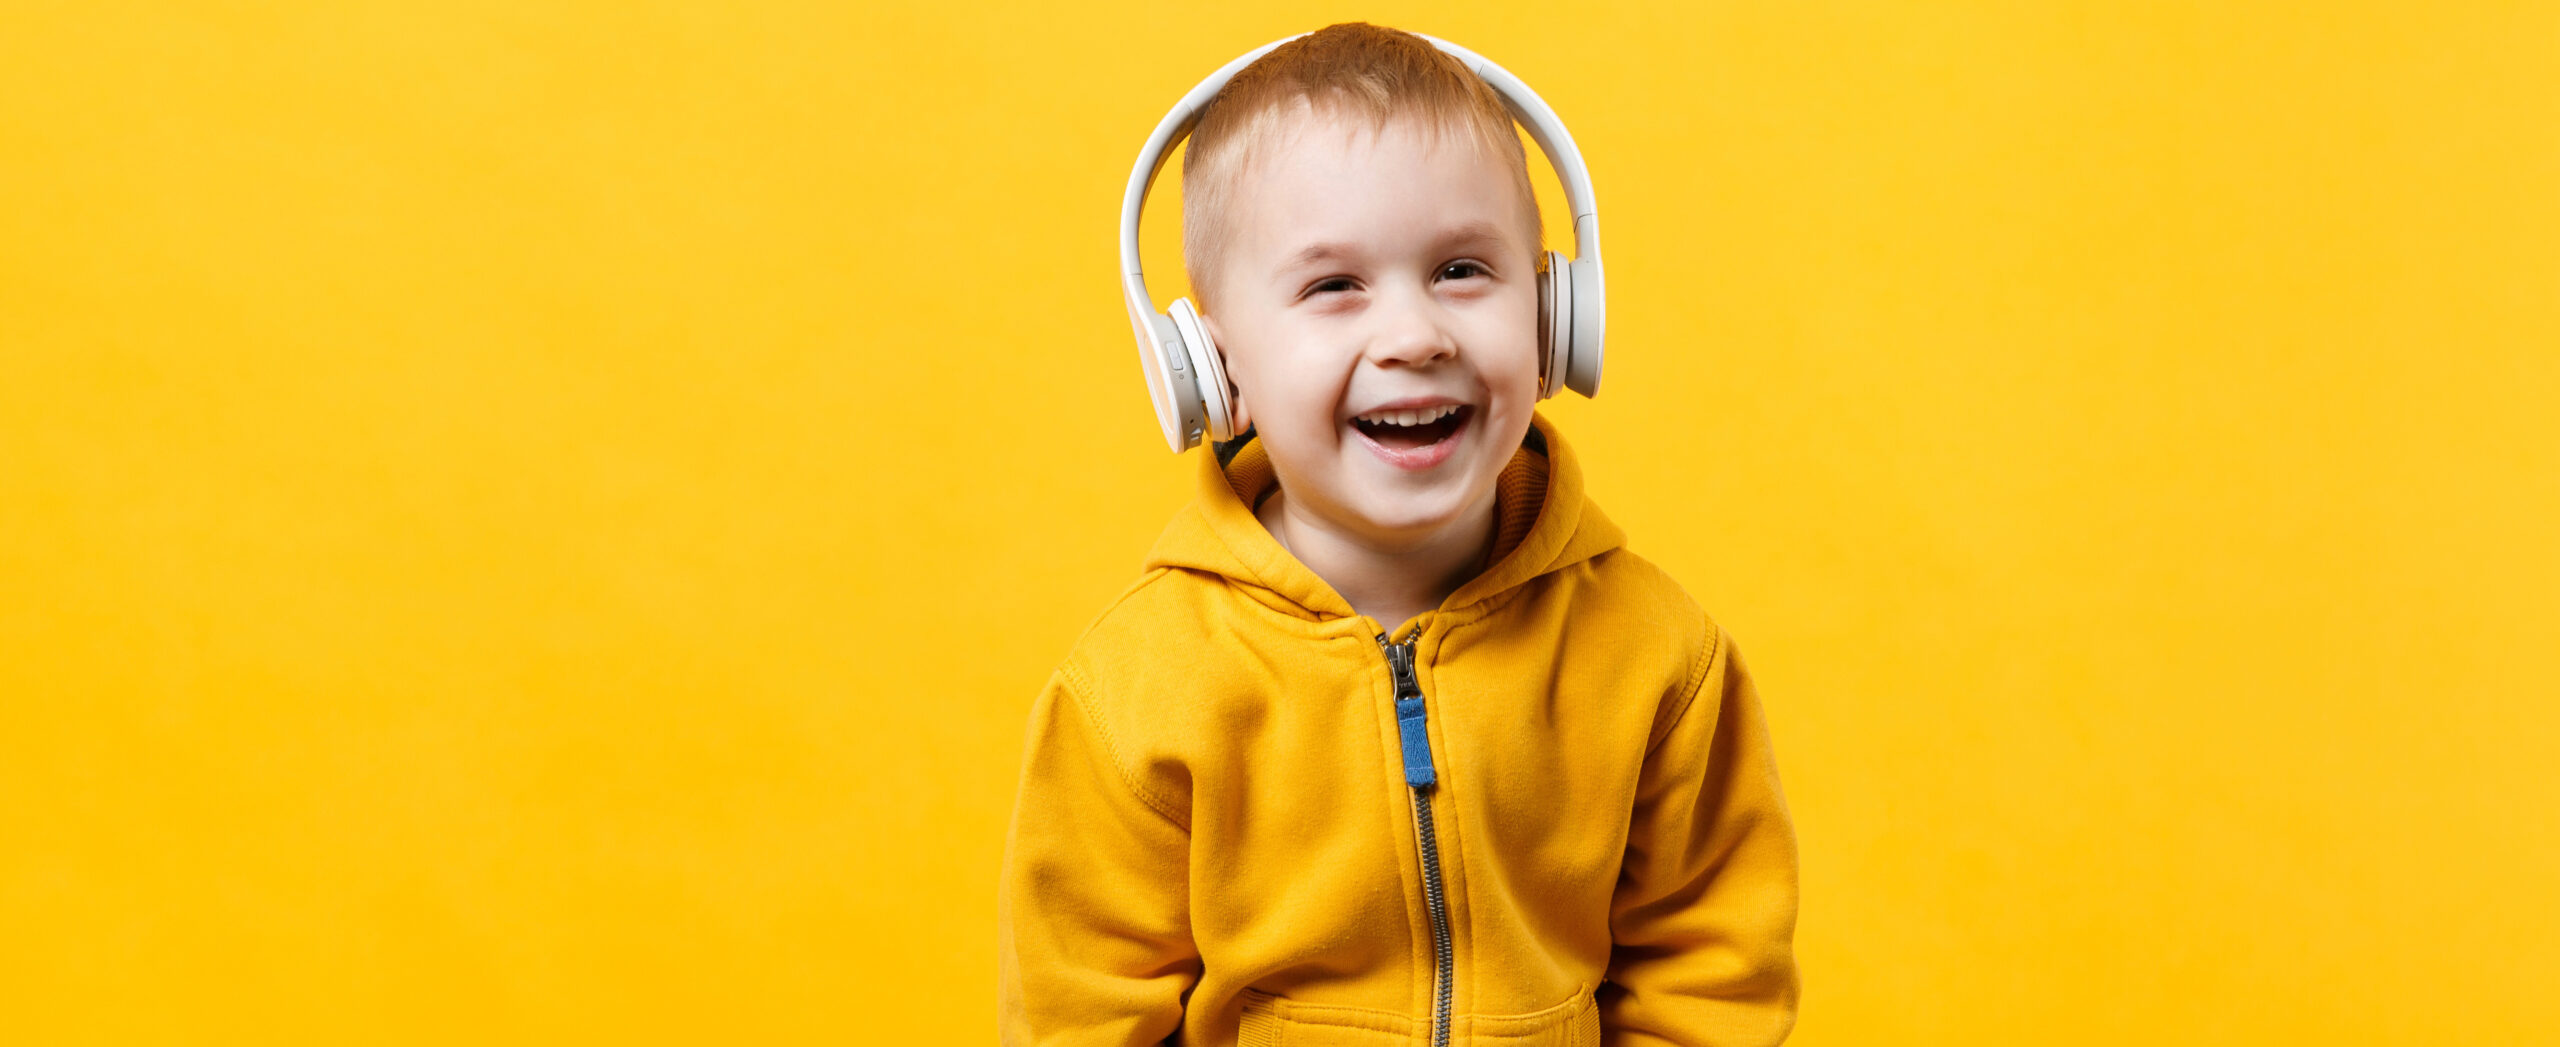 Little kid boy 3-4 years old wearing yellow clothes in headphones isolated on orange wall background, children studio portrait. People sincere emotions childhood lifestyle concept. Mock up copy space